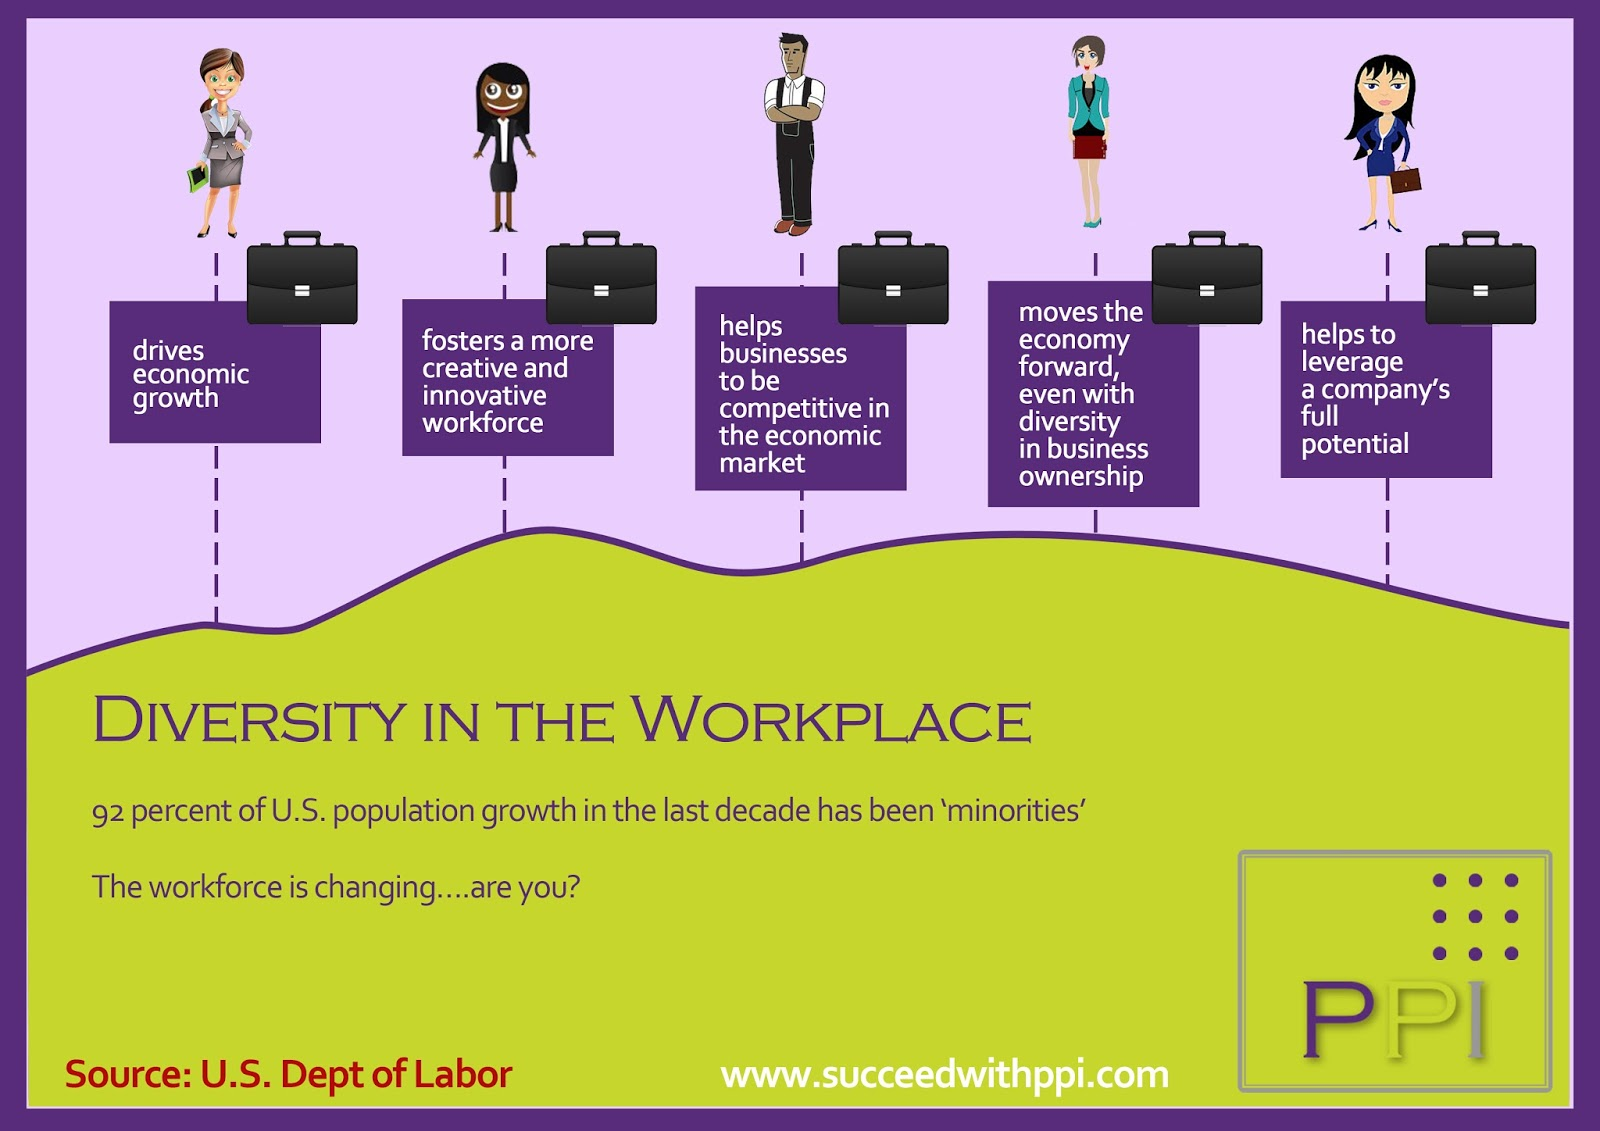 diversity in papers term workplace Diversity is understanding, valuing, and using the differences in every  to  obtain that competitive edge, you need to grow your work-force from.